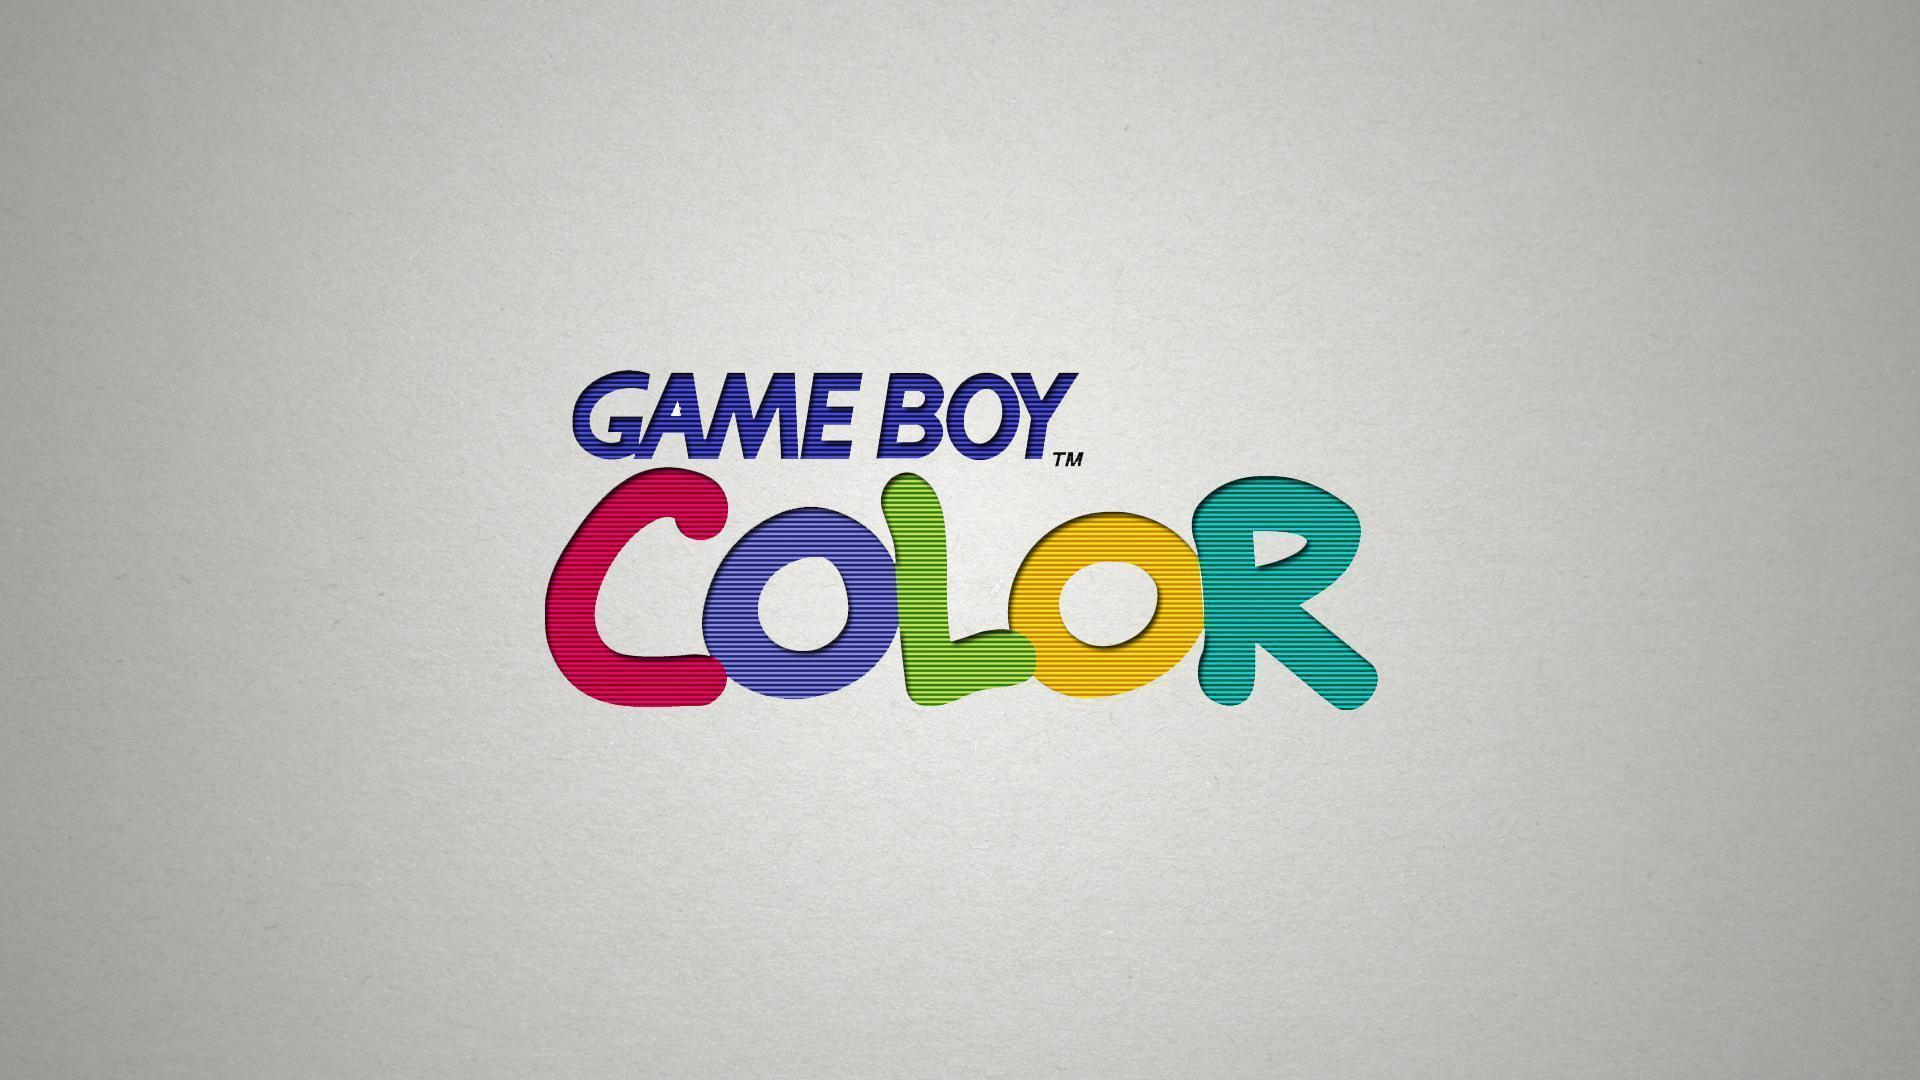 Game boy color online free - Game Boy Computer Wallpapers Desktop Backgrounds 1920x1080 Id 457042